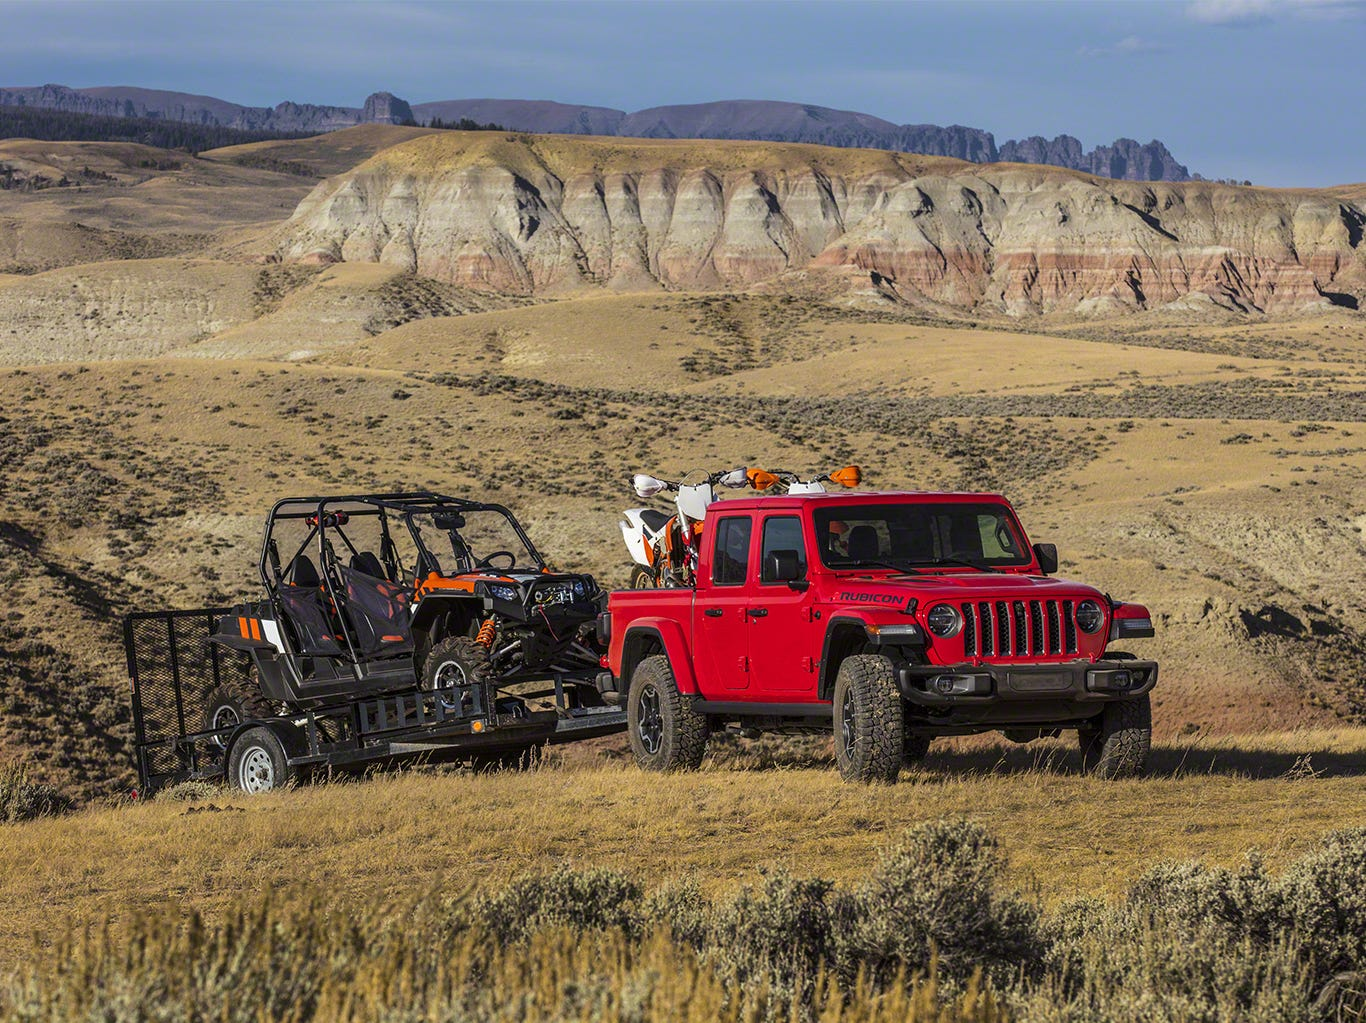 The 2020 Jeep Gladiator has up to 7,650 pounds of towing capacity and up to 1,600 pounds of payload capacity.